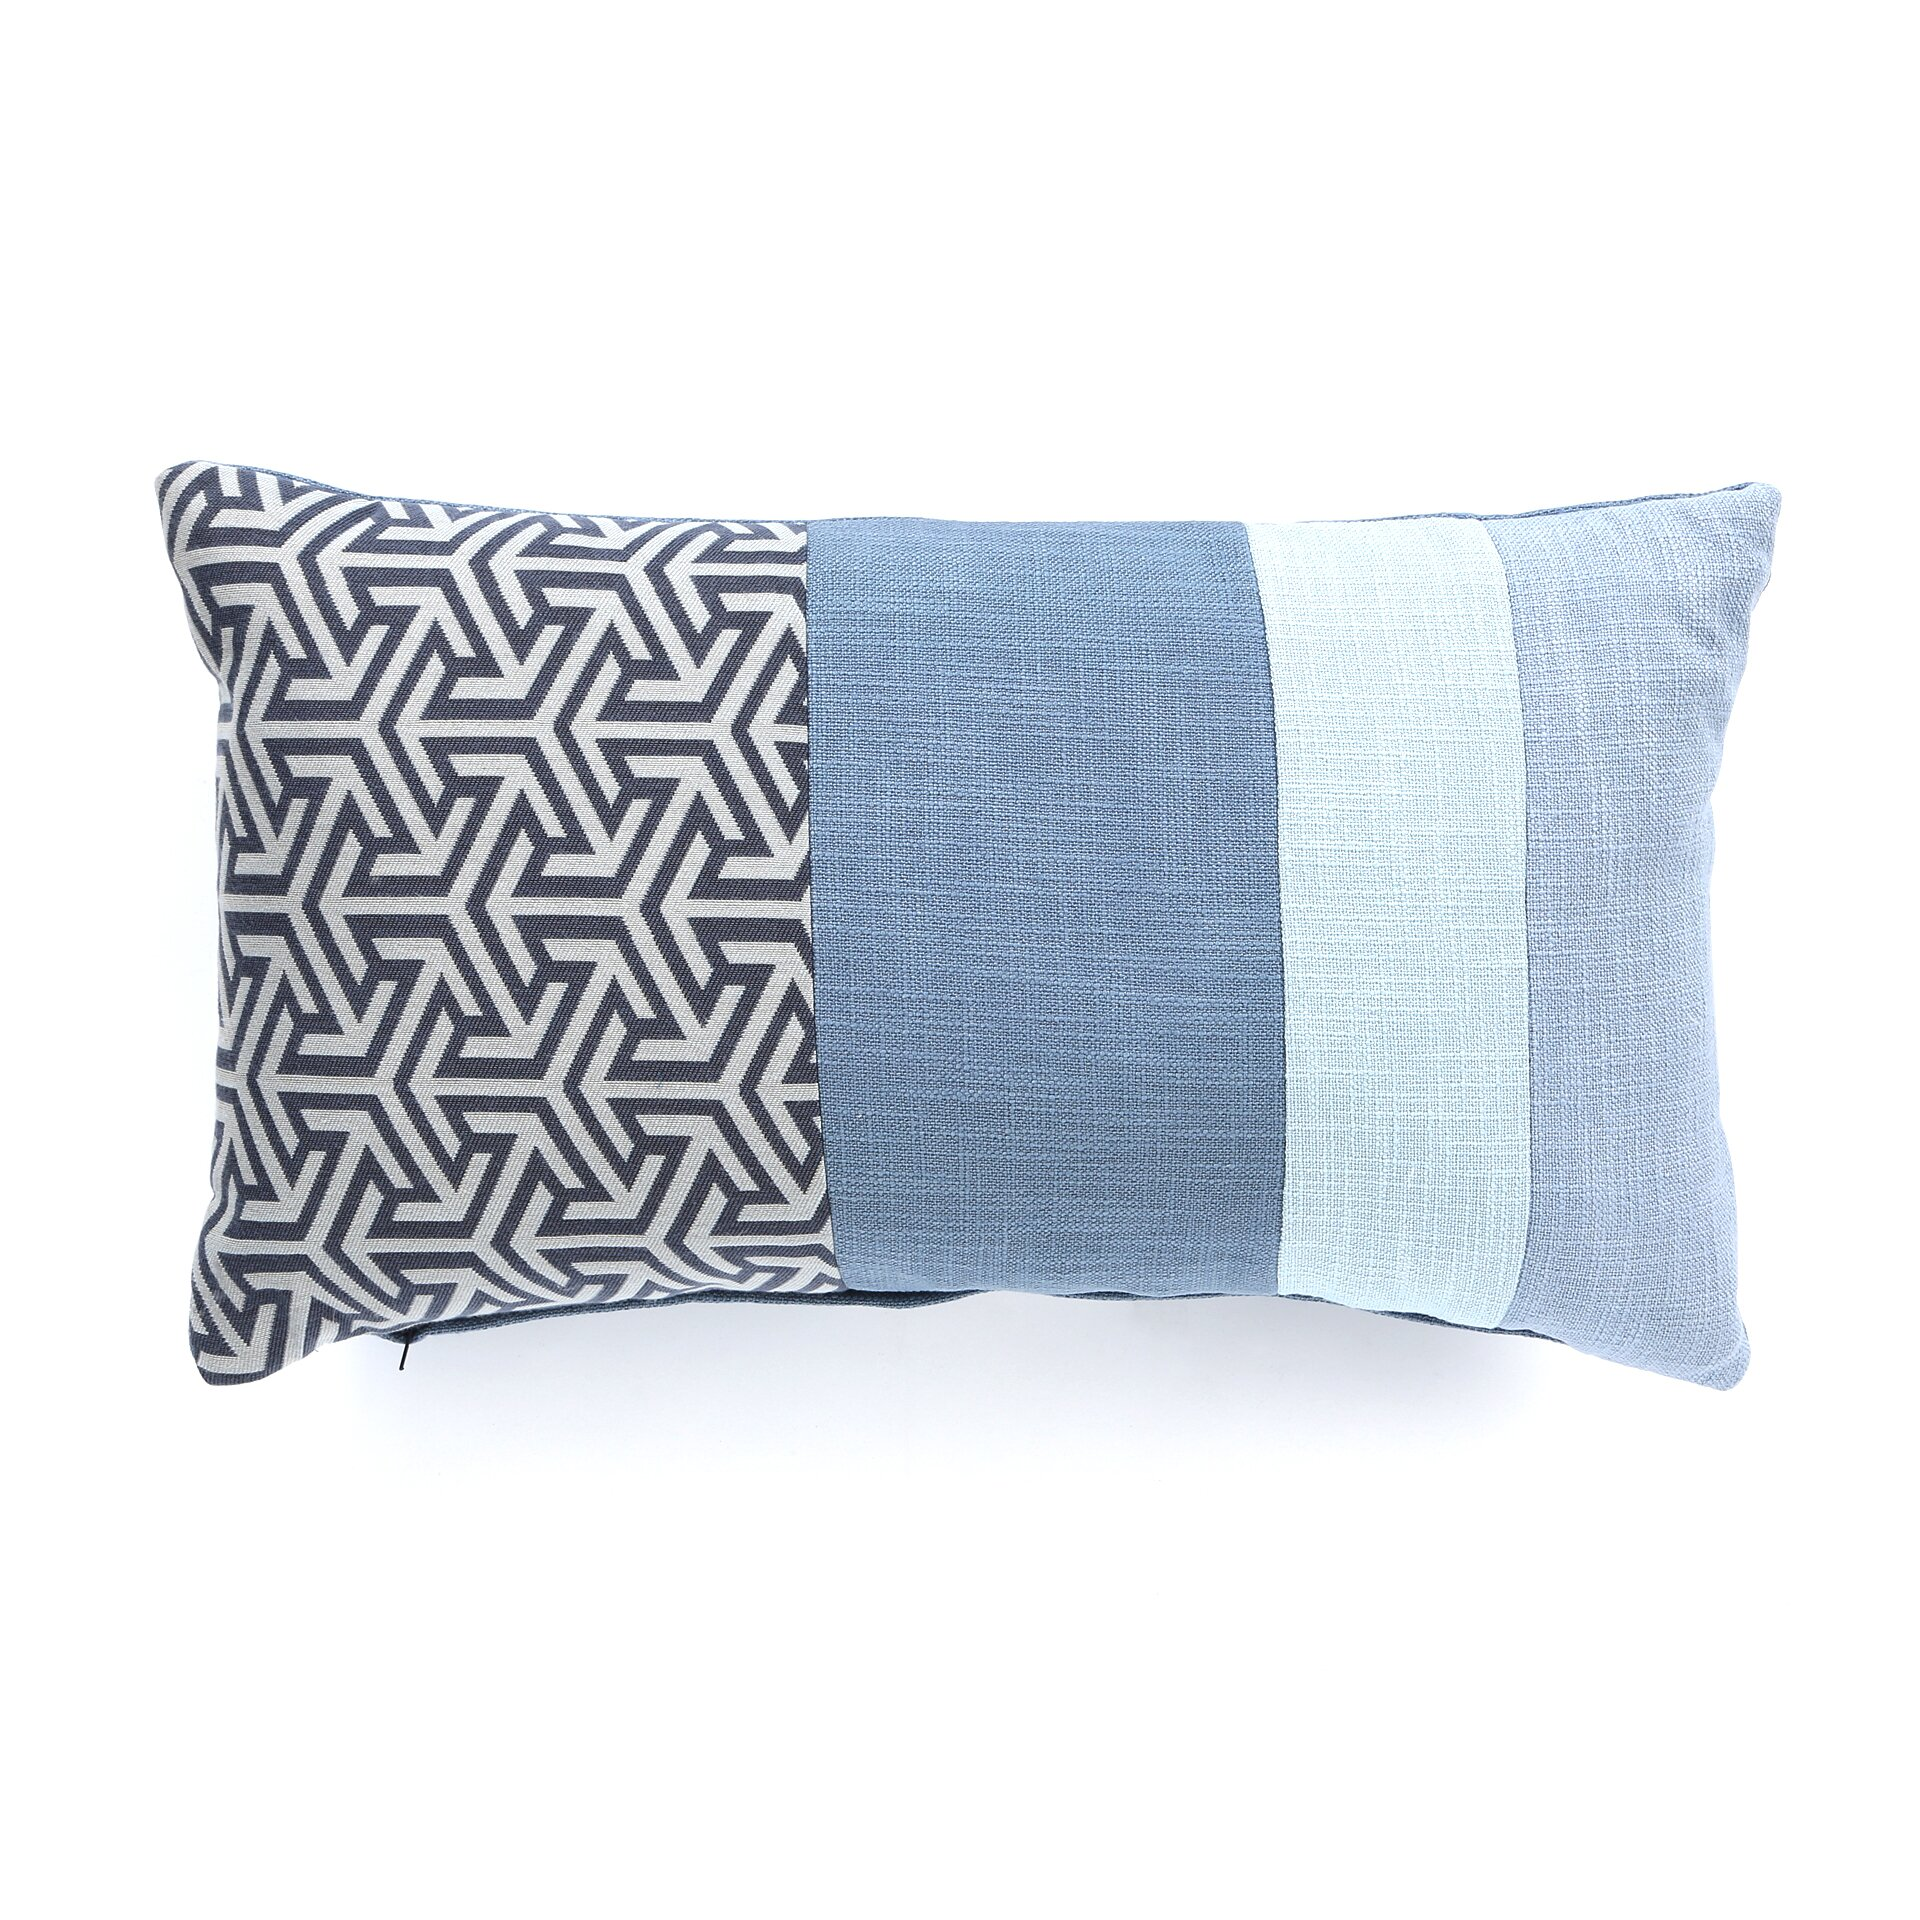 Wayfair Blue Decorative Pillows : Eastern Accents Mondrian Throw Pillow & Reviews Wayfair